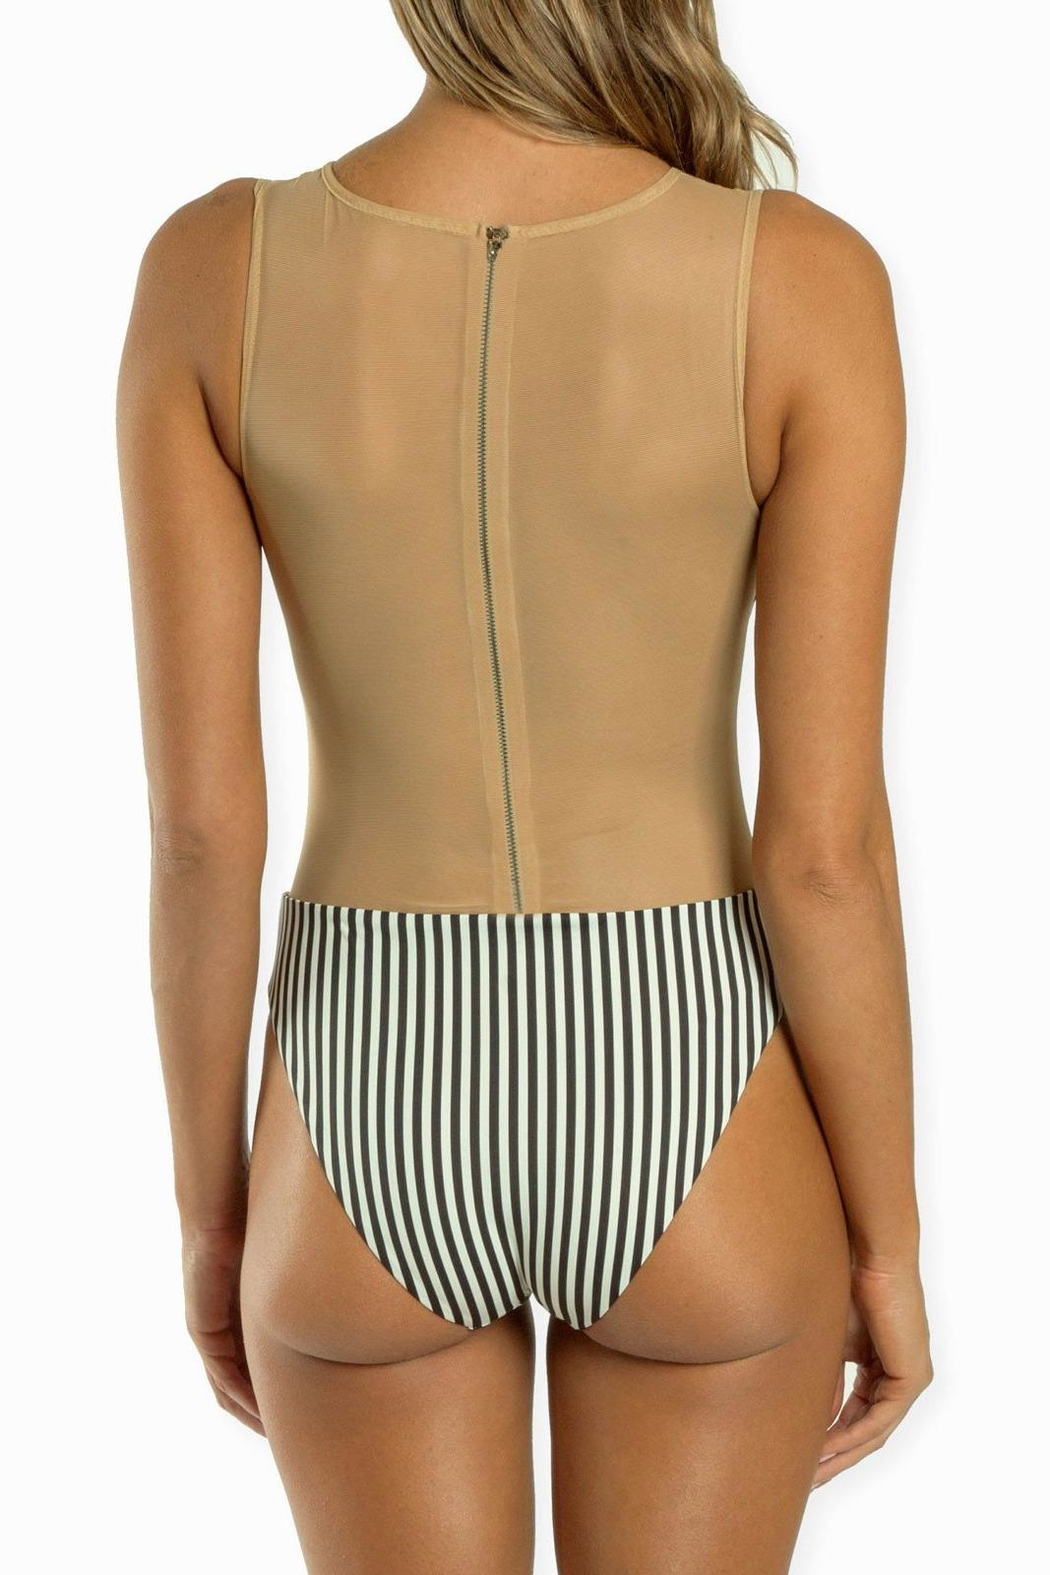 boys + arrows Prude Jude One Piece - Front Full Image